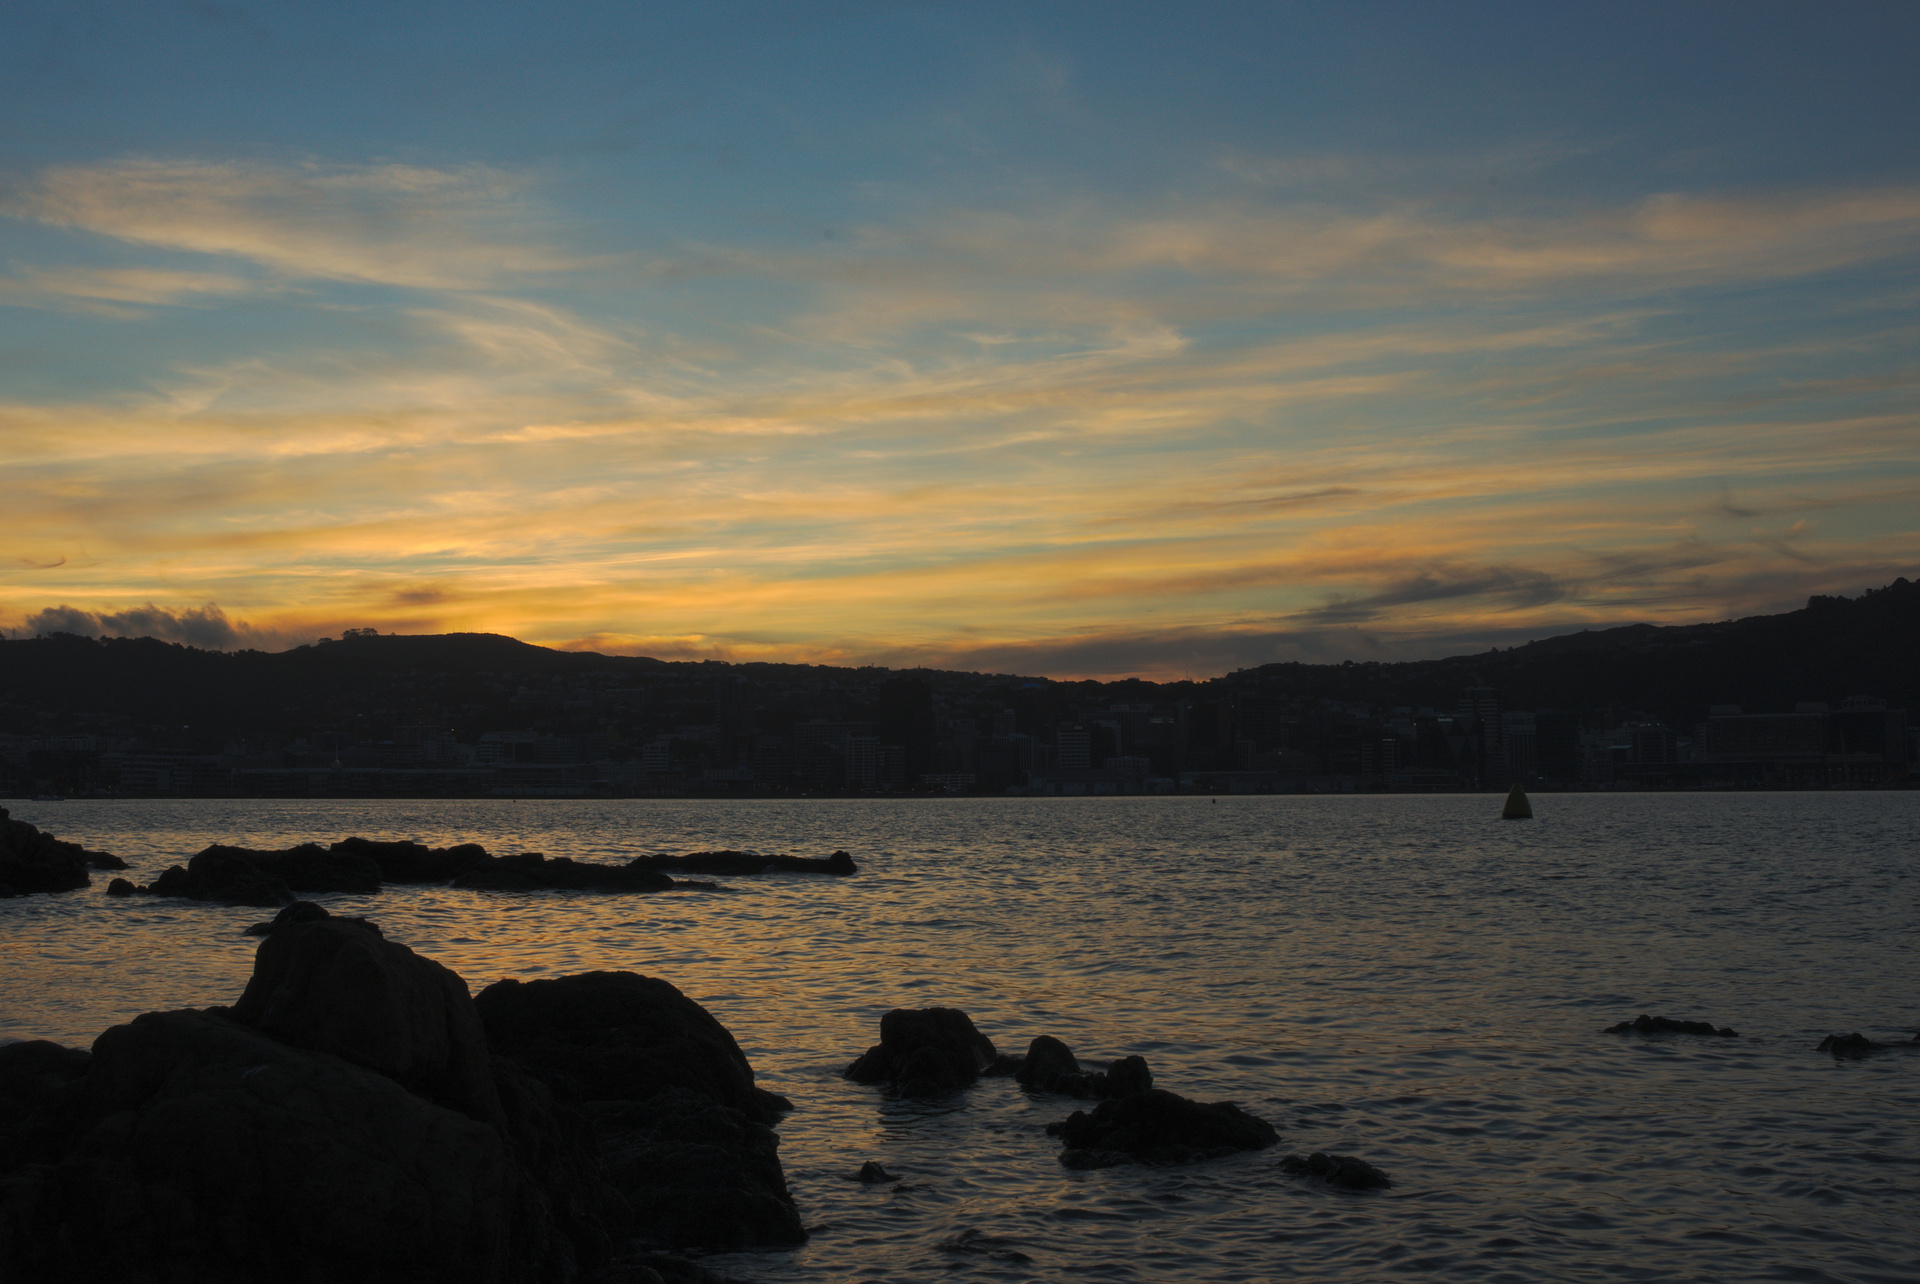 The evening started with a sunset over Wellington